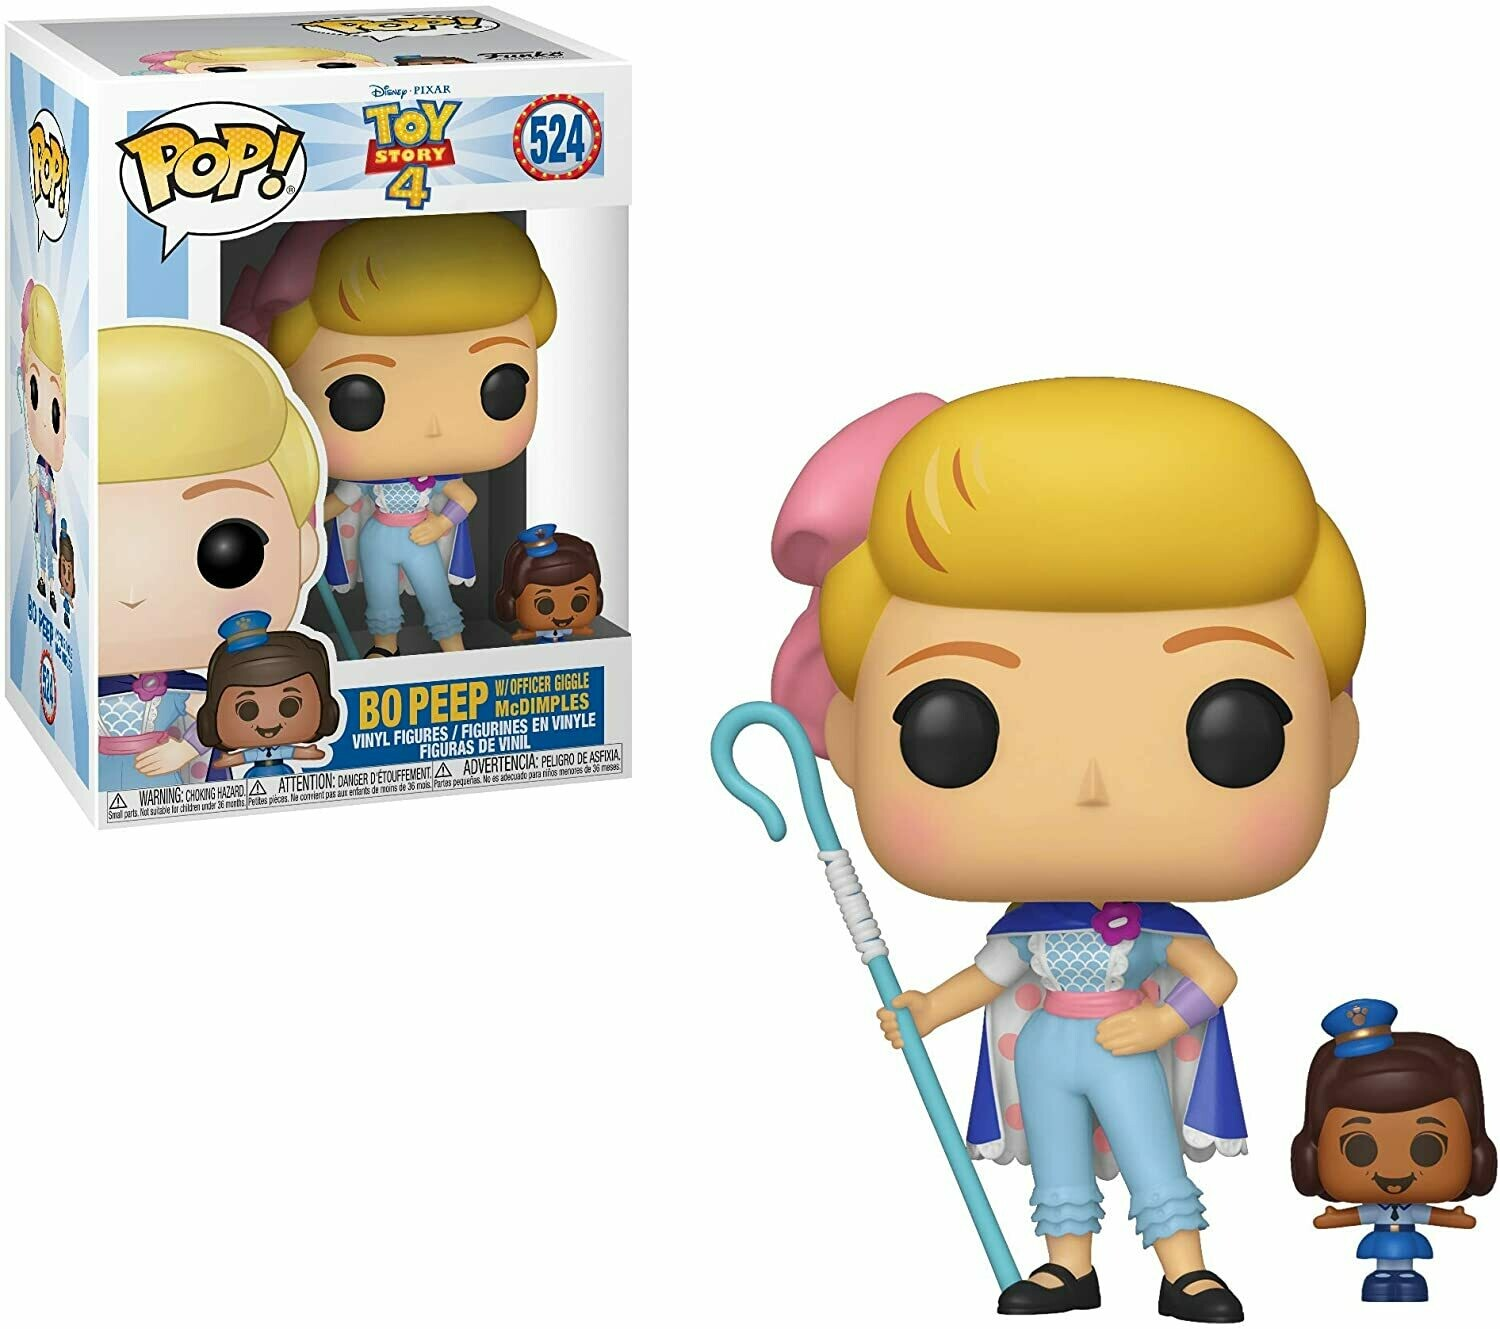 Funko Pop! Bo Peep c/ Officer Giggle - Toy Story 4